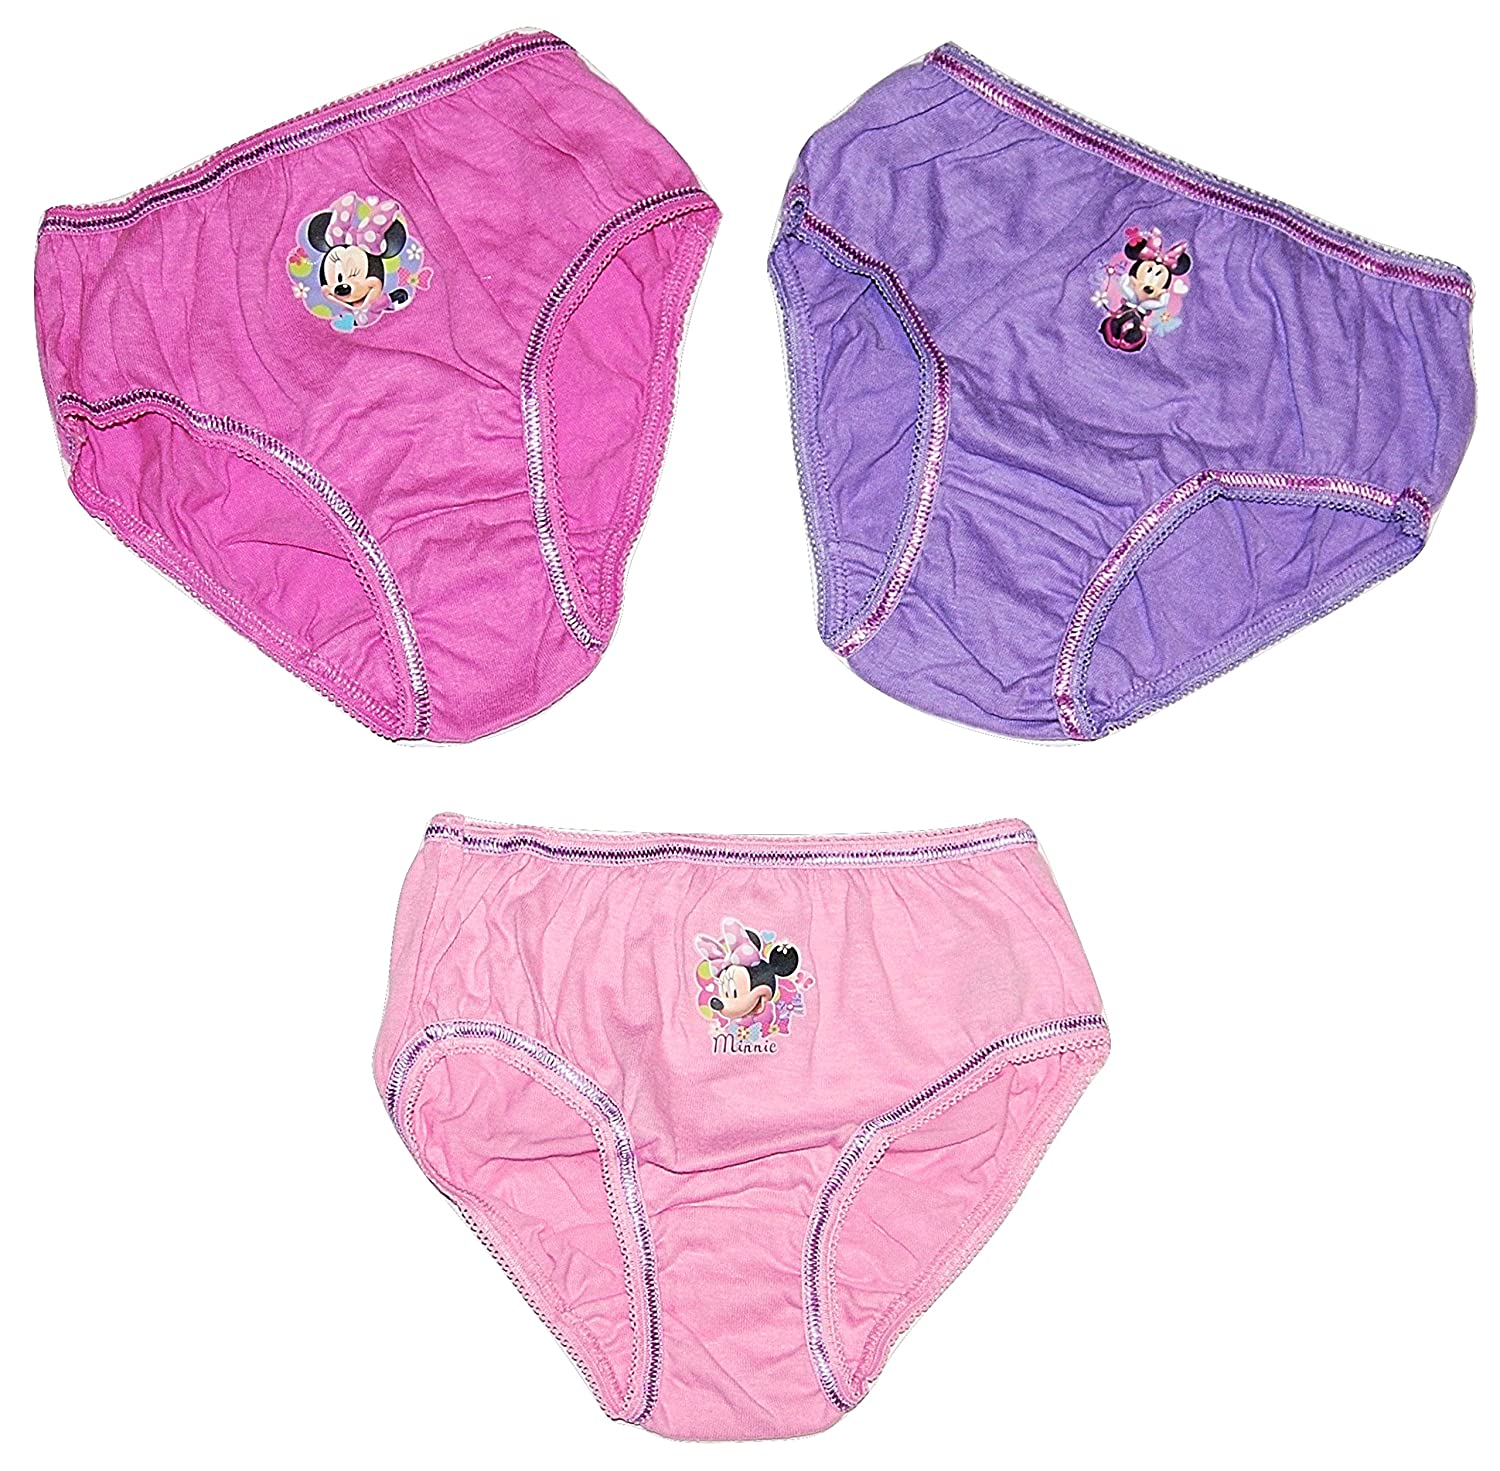 Girls Kids My Little Pony Pants Briefs Knickers Set 3-4 Years 3 Pack